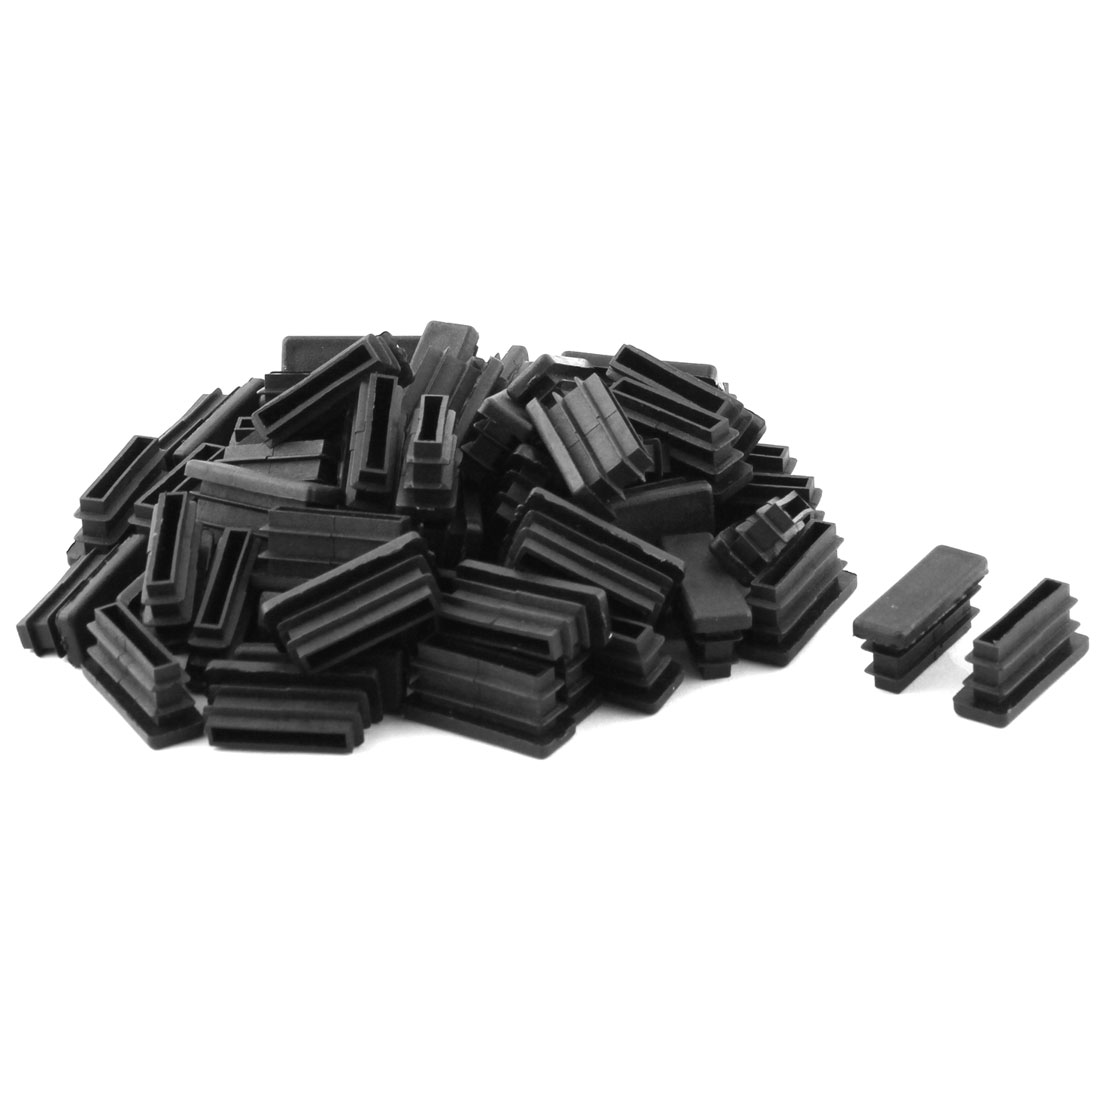 Plastic Rectangle Design Tube Insert End Blanking Cover Cap Black 10.5 x 30mm 60pcs